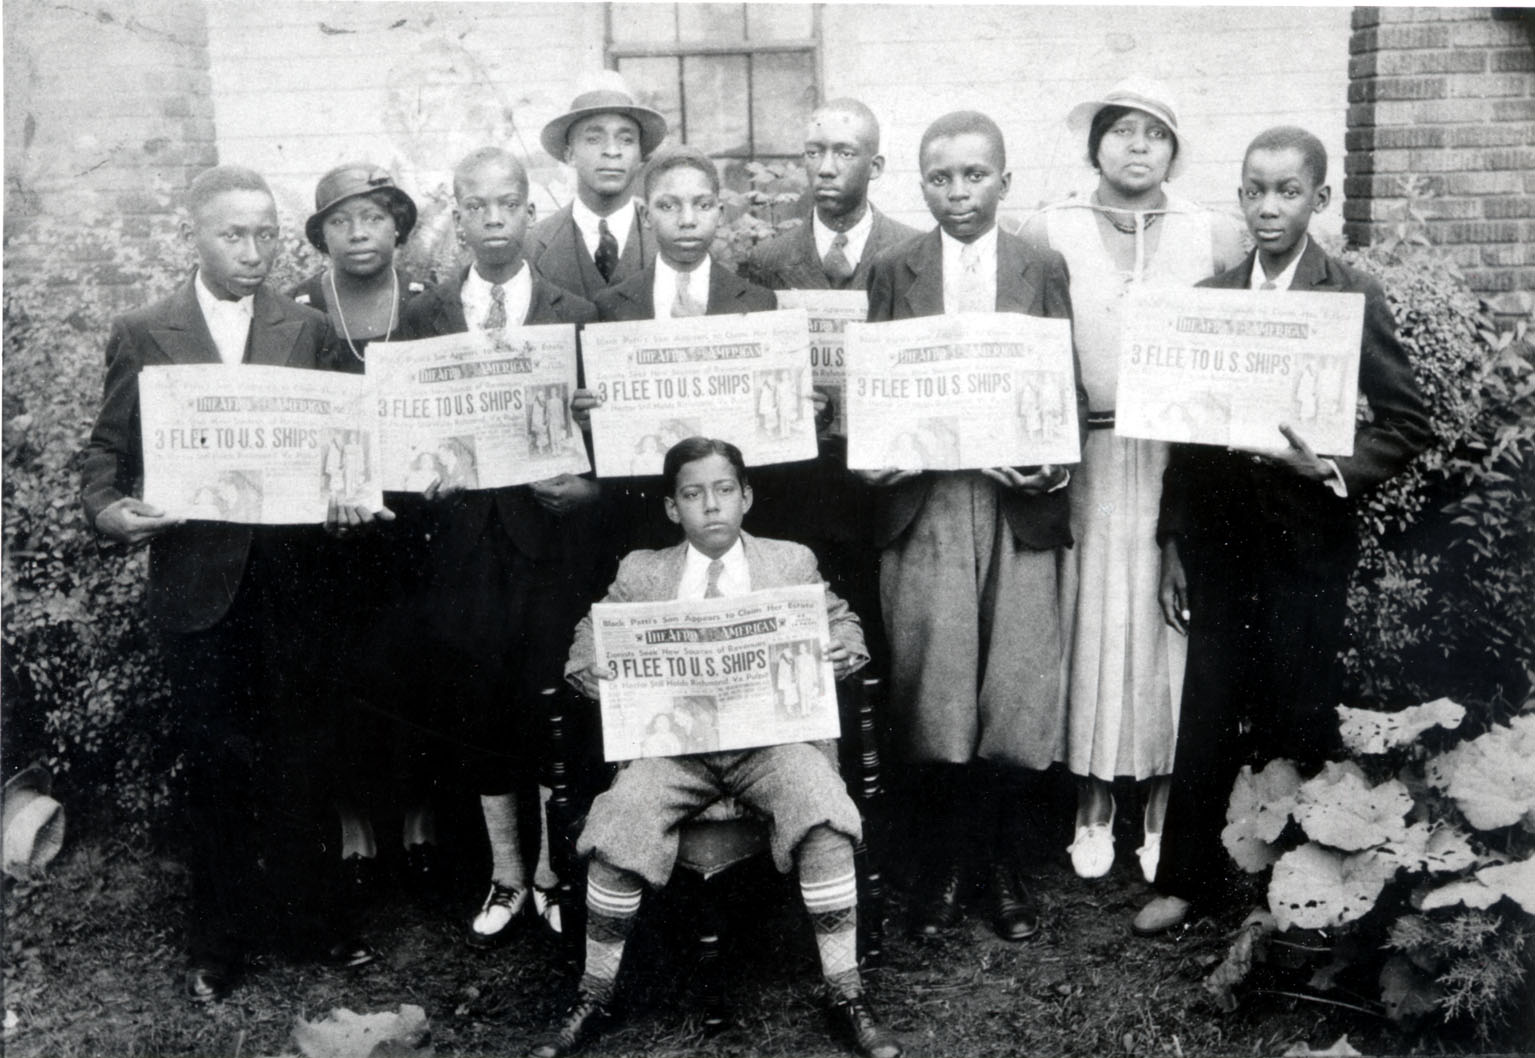 The Afro-American newspaper carriers, 1933